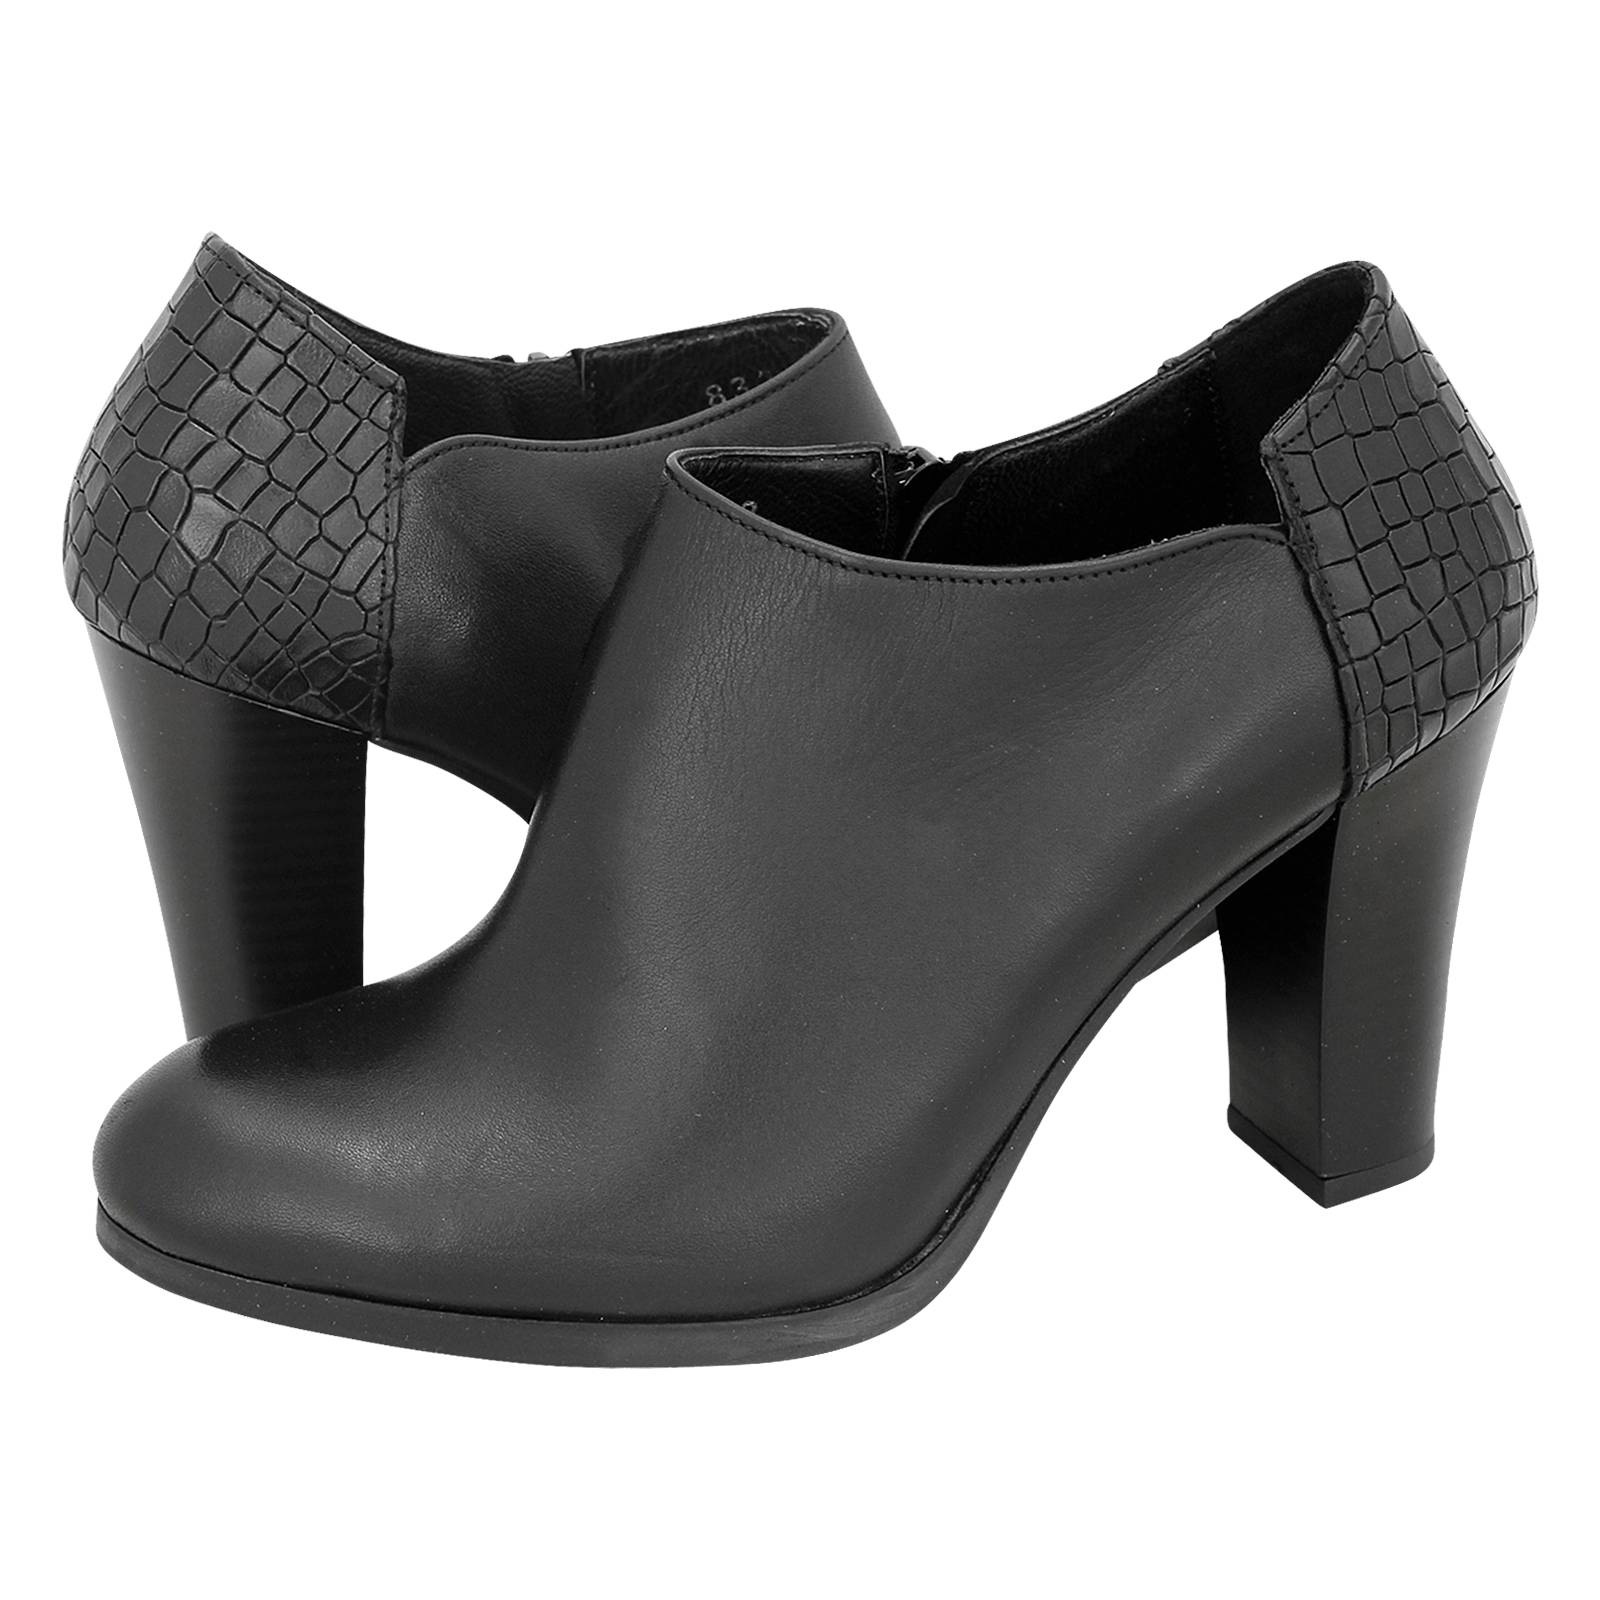 Turondale - Esthissis Women s low boots made of leather and snake ... ec68f307835